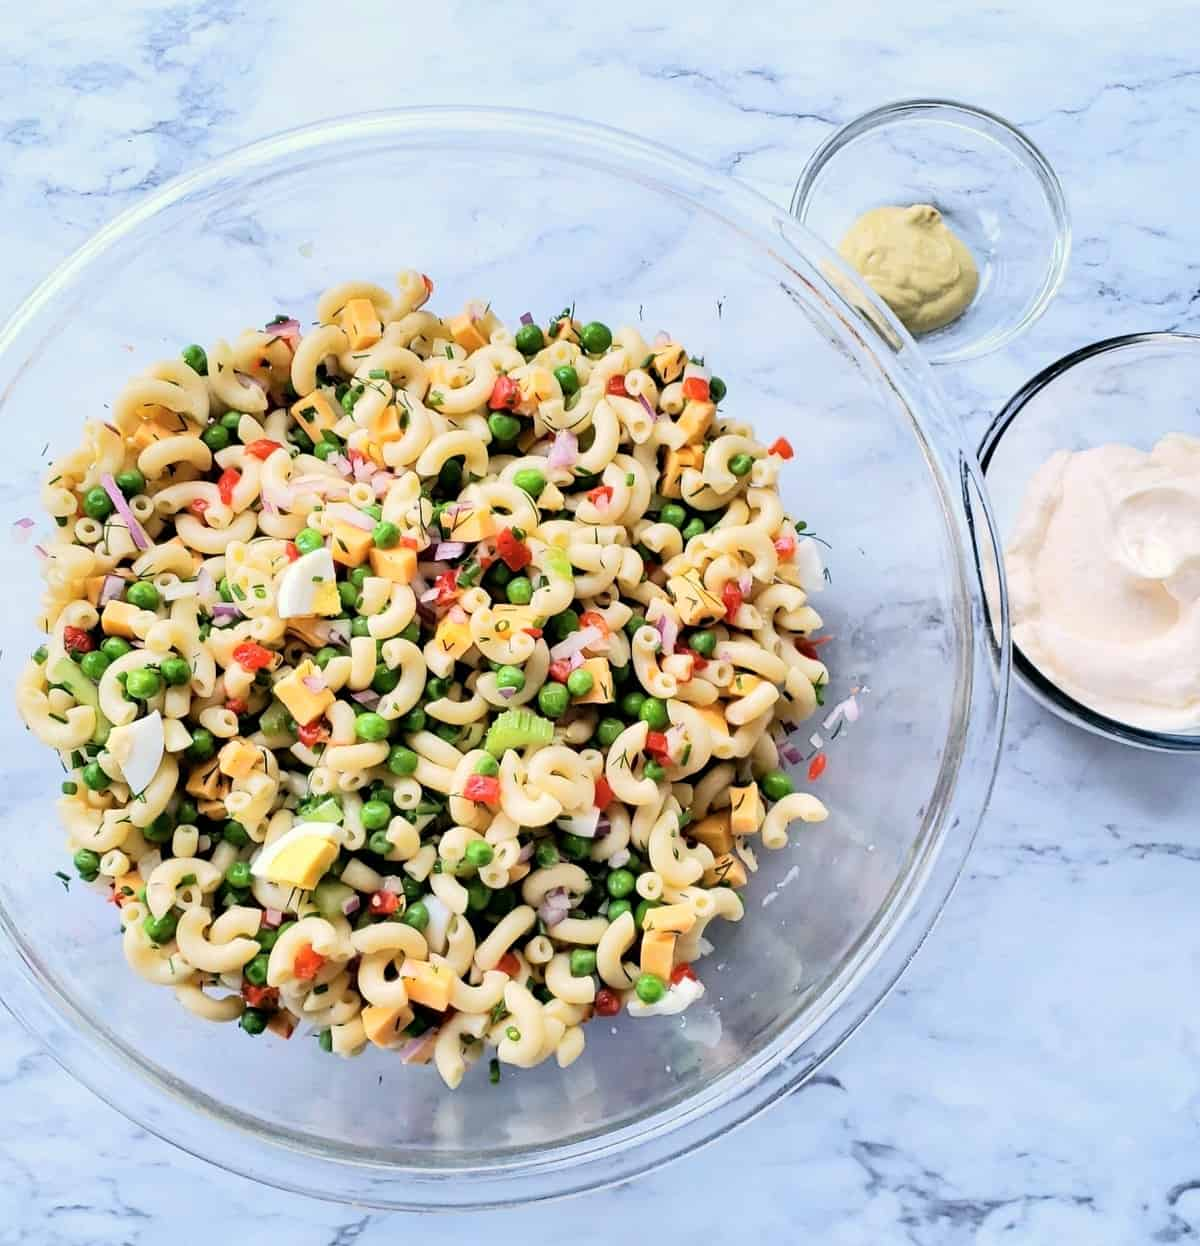 Glass bowl of elbow macaroni salad; two small bowls of mayonnaise and mustard